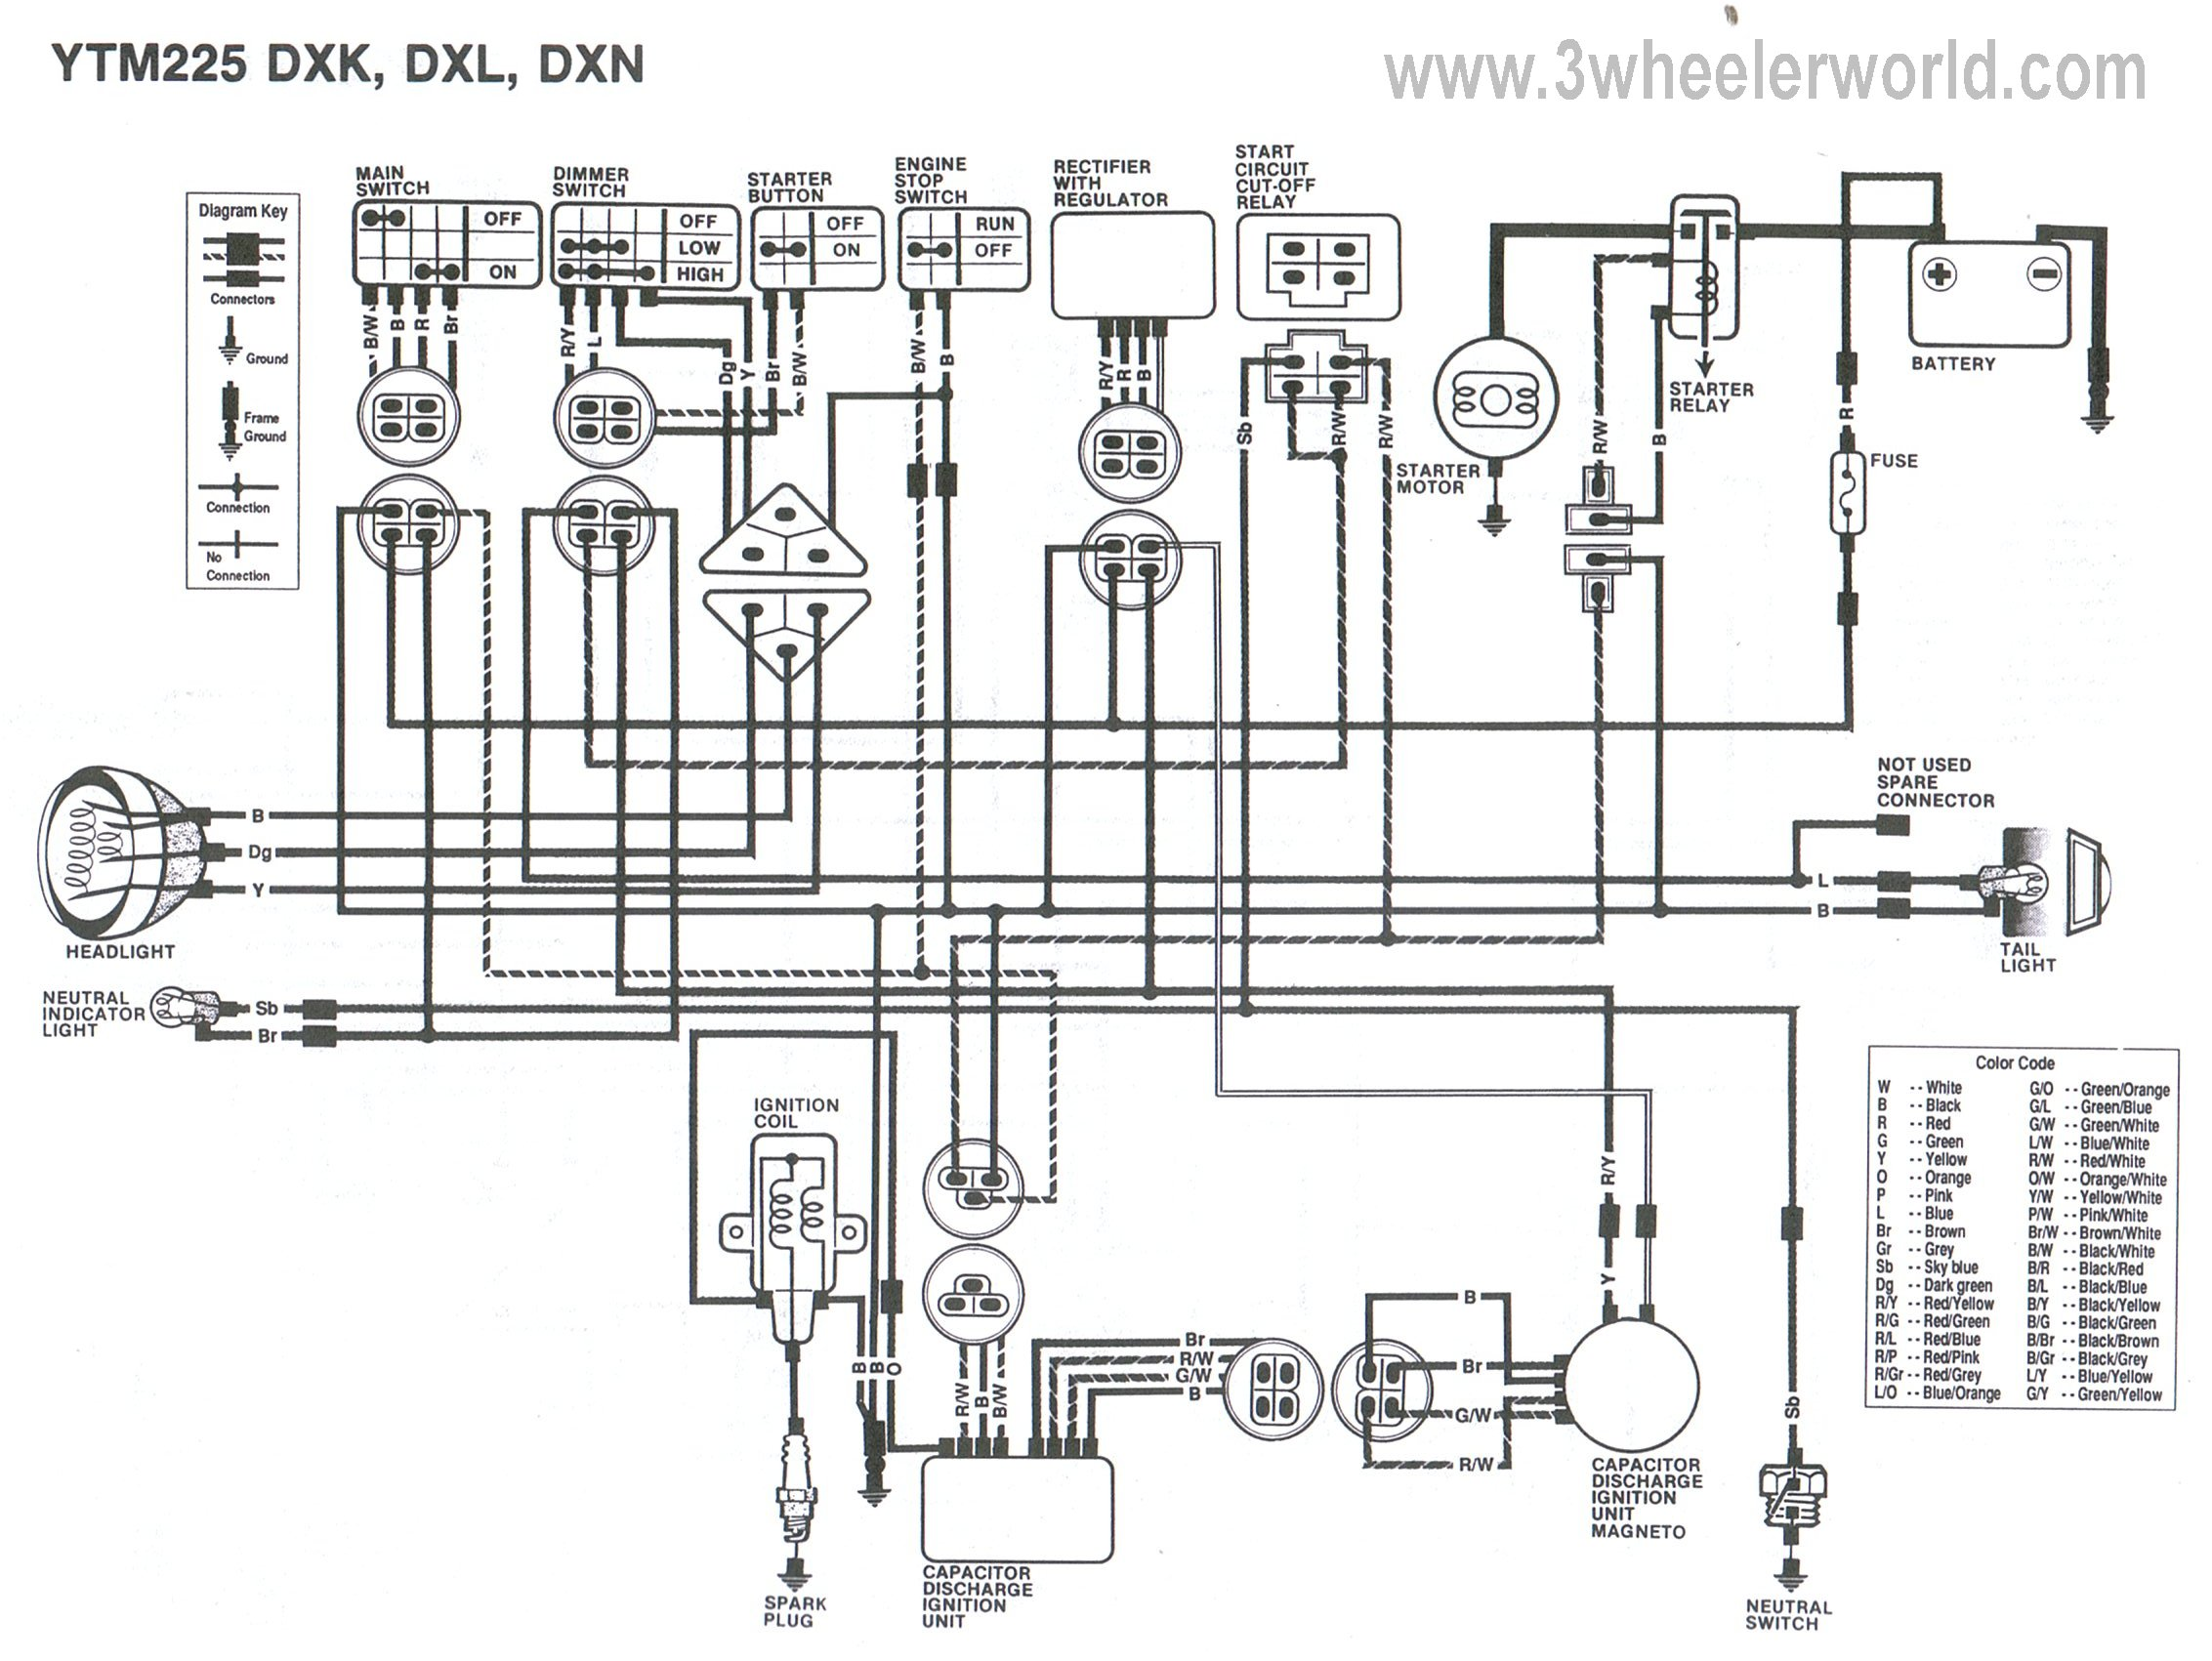 YTM225DXKDXLDXN 3 wheeler world tech help yamaha wiring diagrams yamaha ignition switch wiring diagram at alyssarenee.co